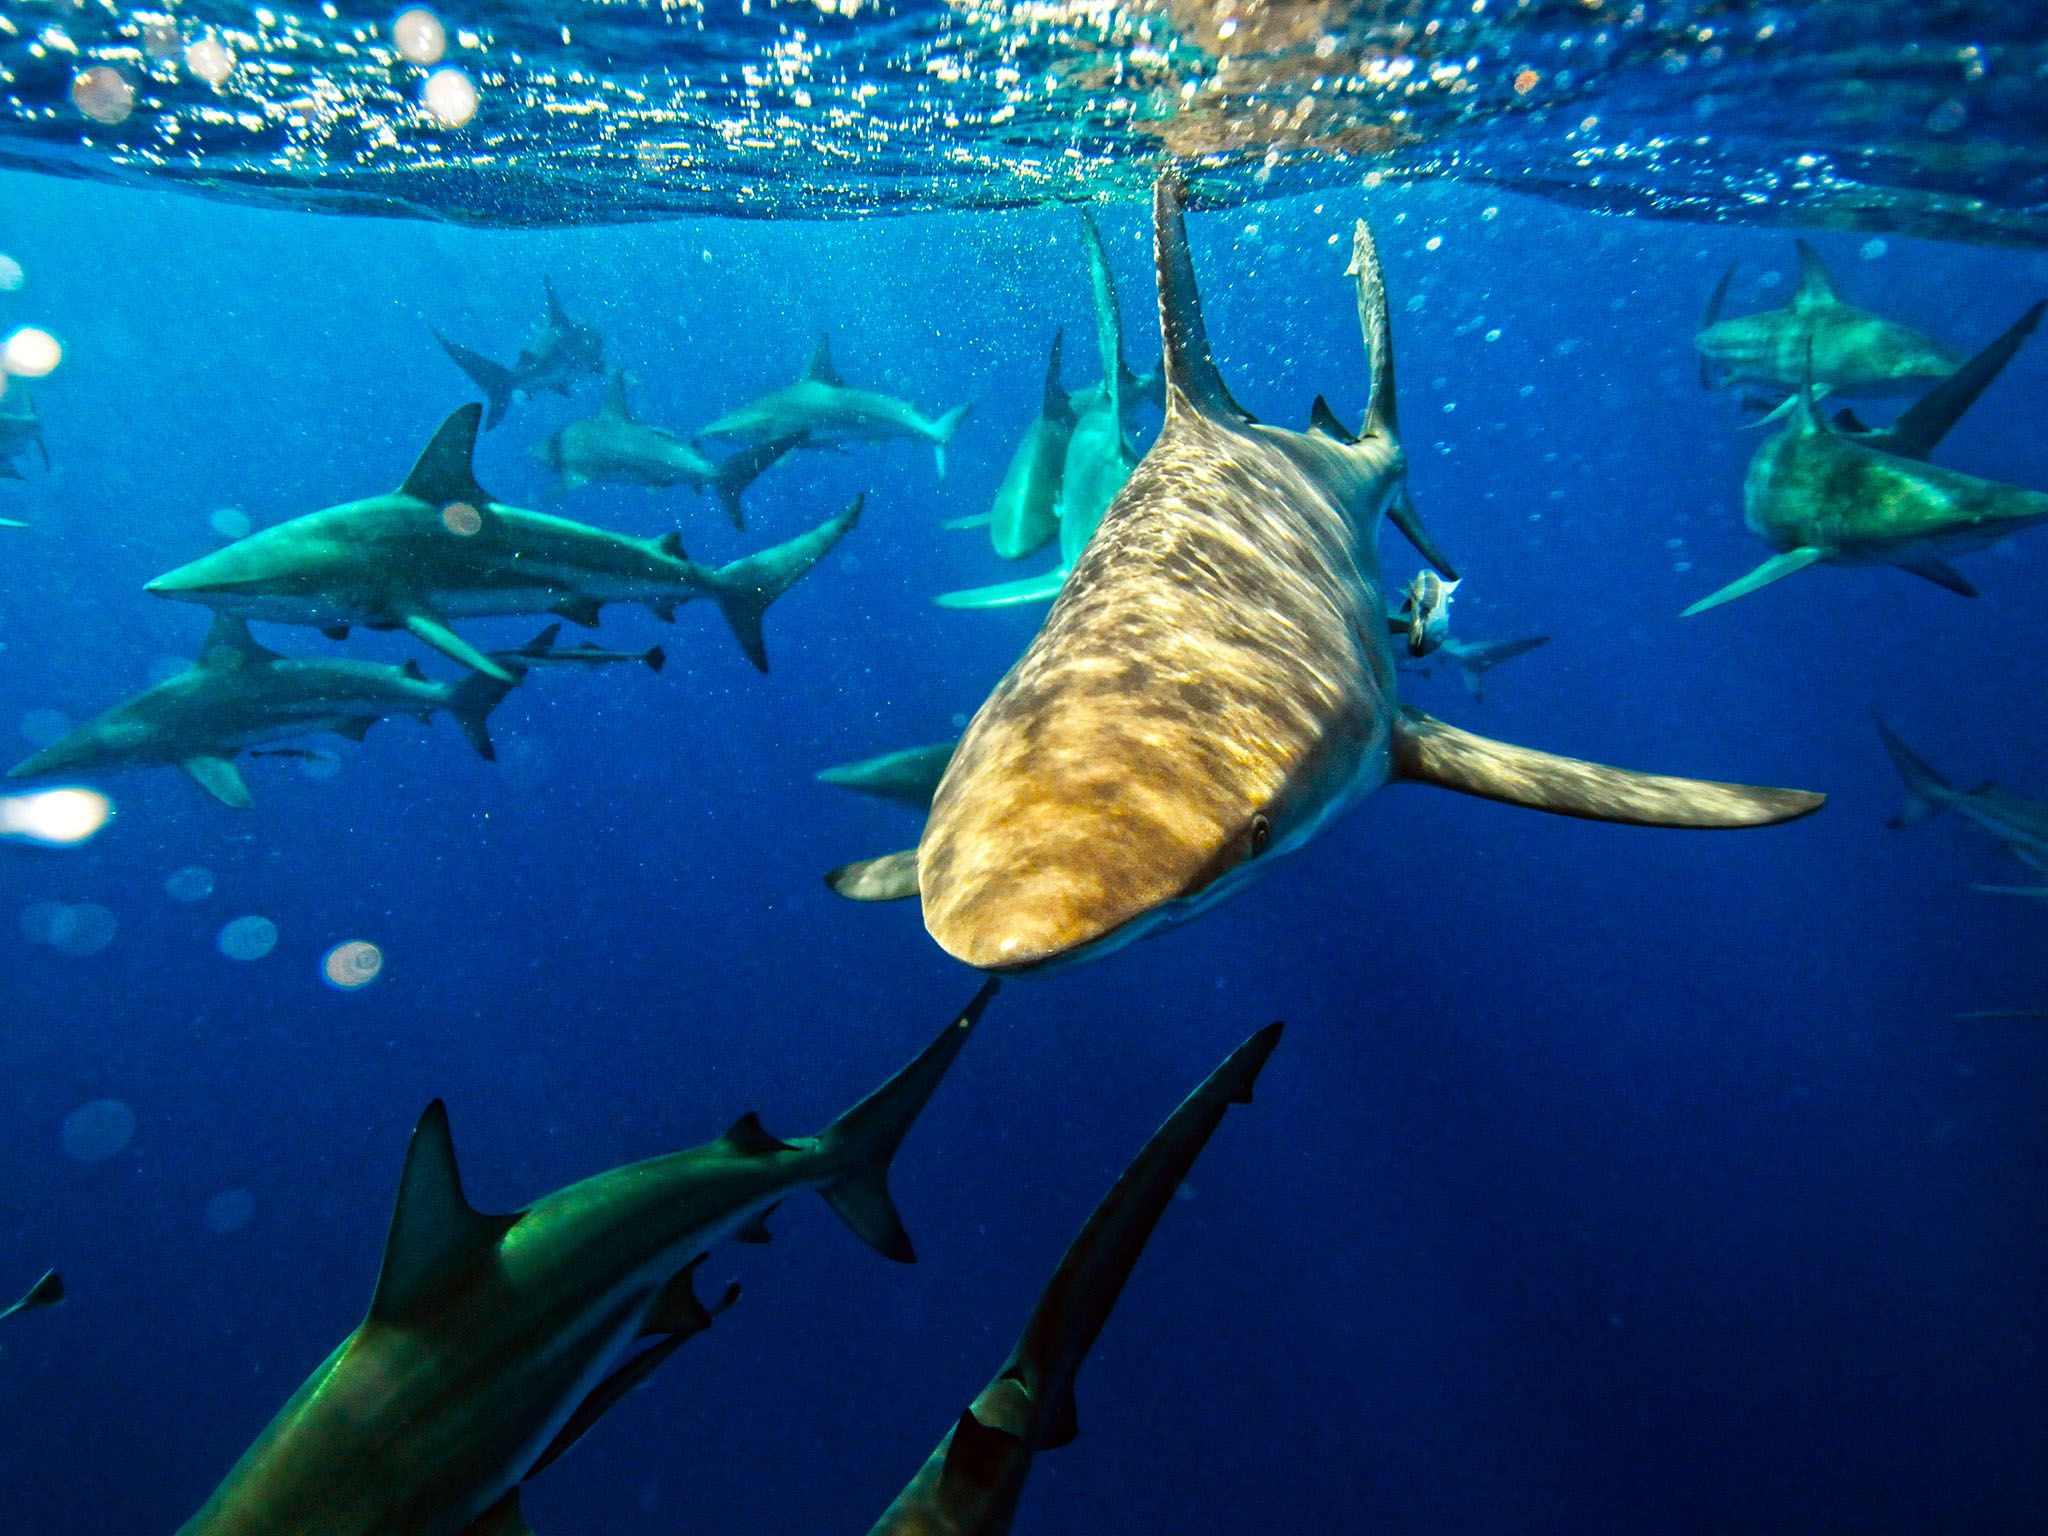 South Africa: Group of Black Tip Sharks swimming just beneath the water's surface. This image is... [Photo of the day - August 2015]